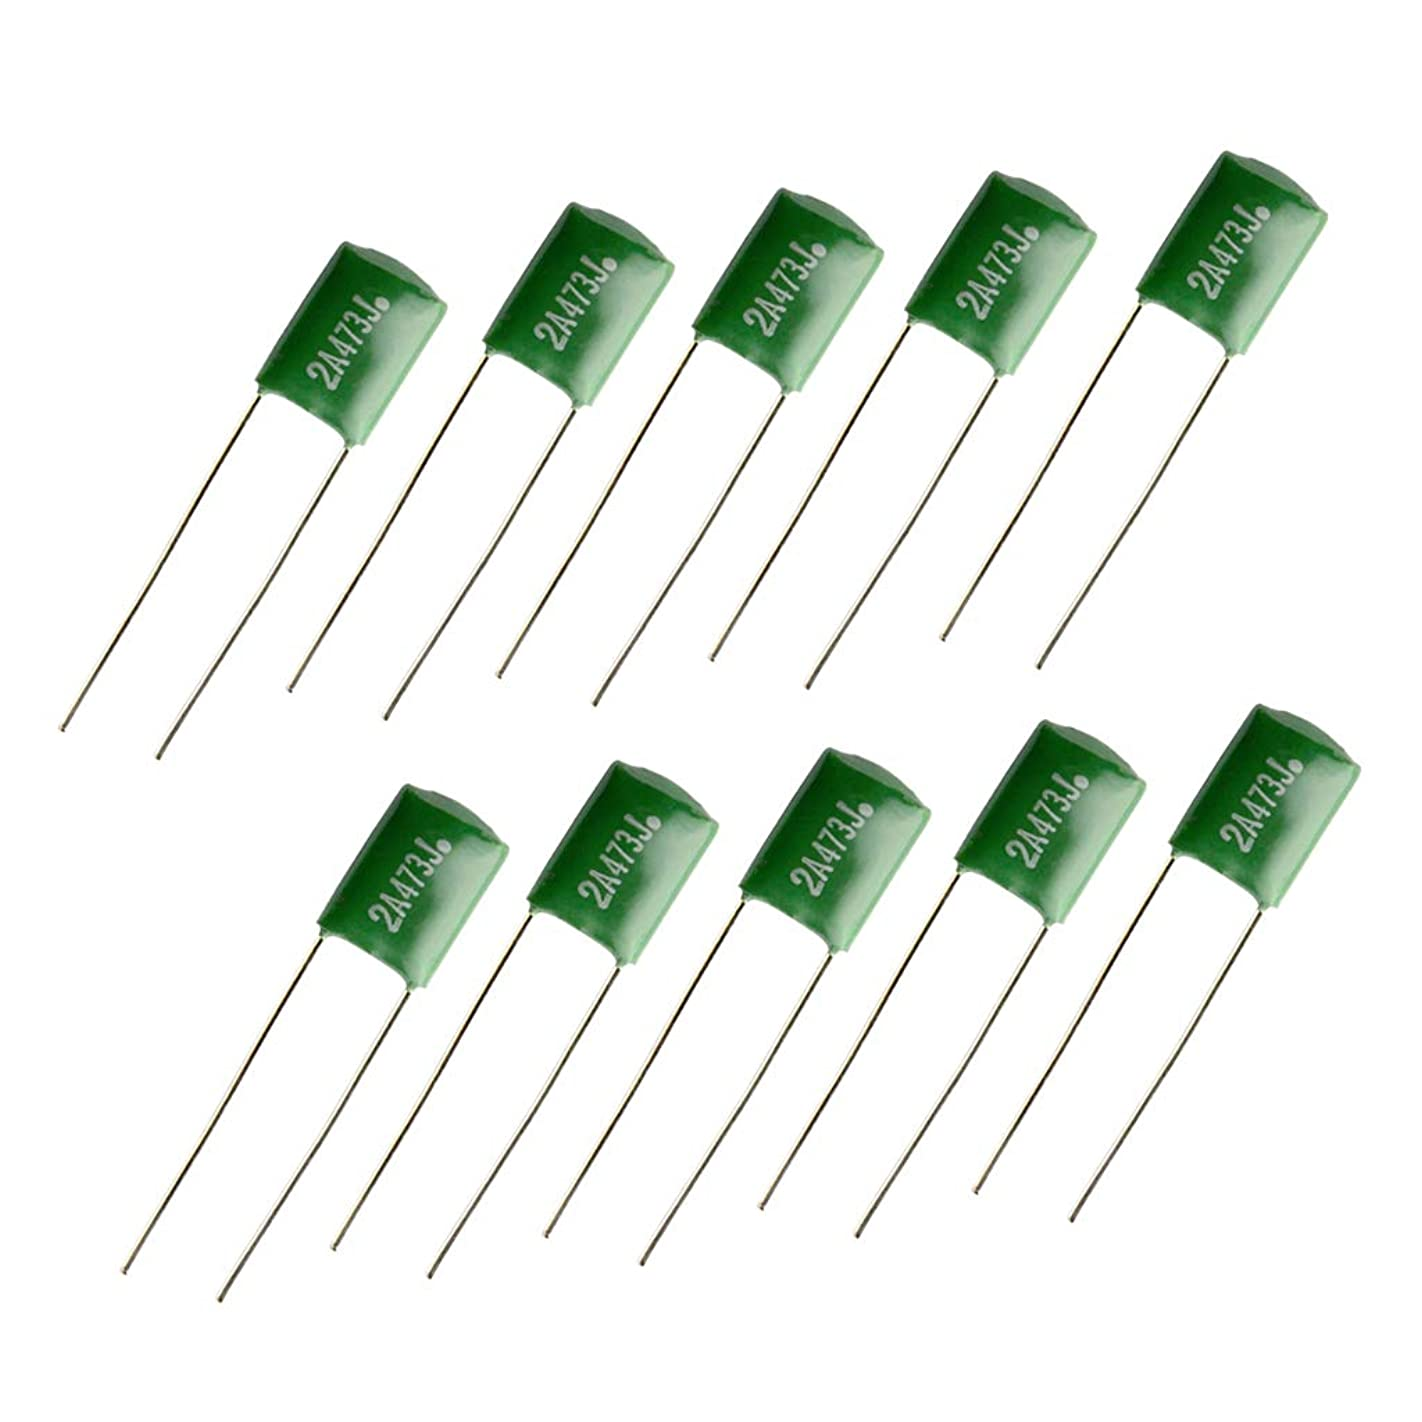 kesoto 10 Pieces Electric Guitars Capacitors .047 2A473J Tone Cap k14838750521